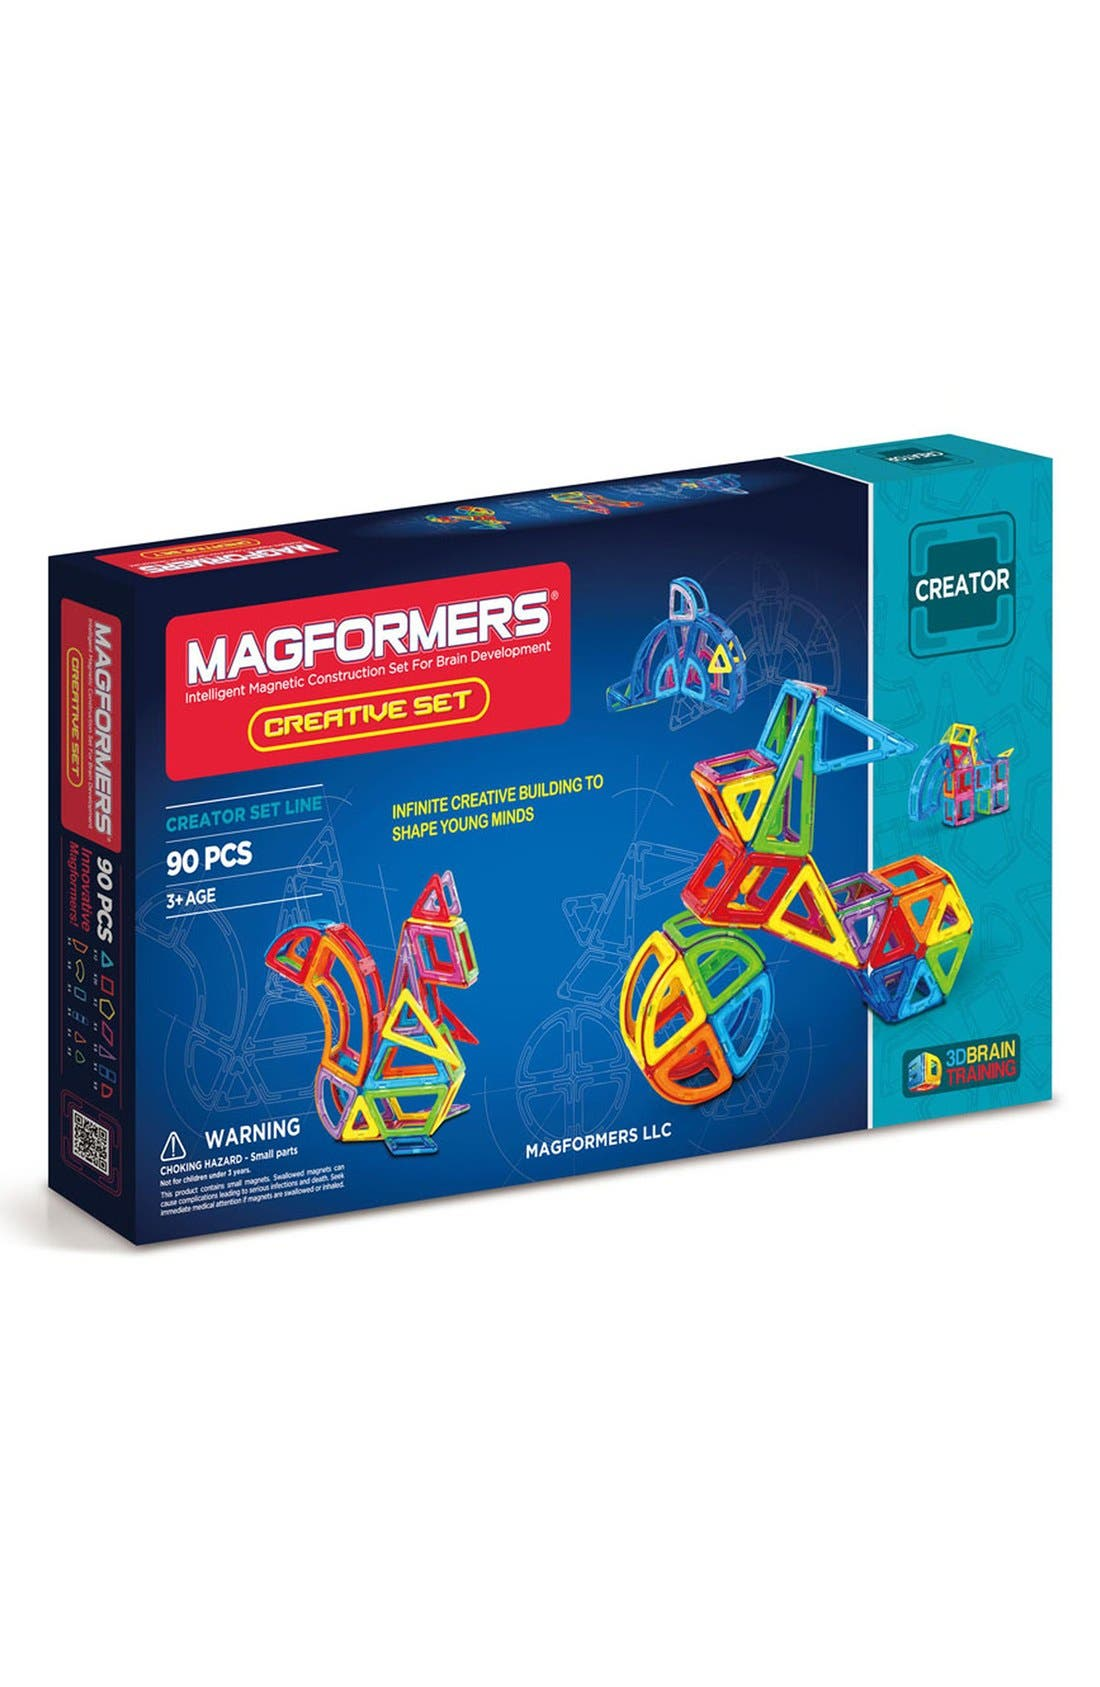 MAGFORMERS 'Creator - Creative' Magnetic 3D Construction Set